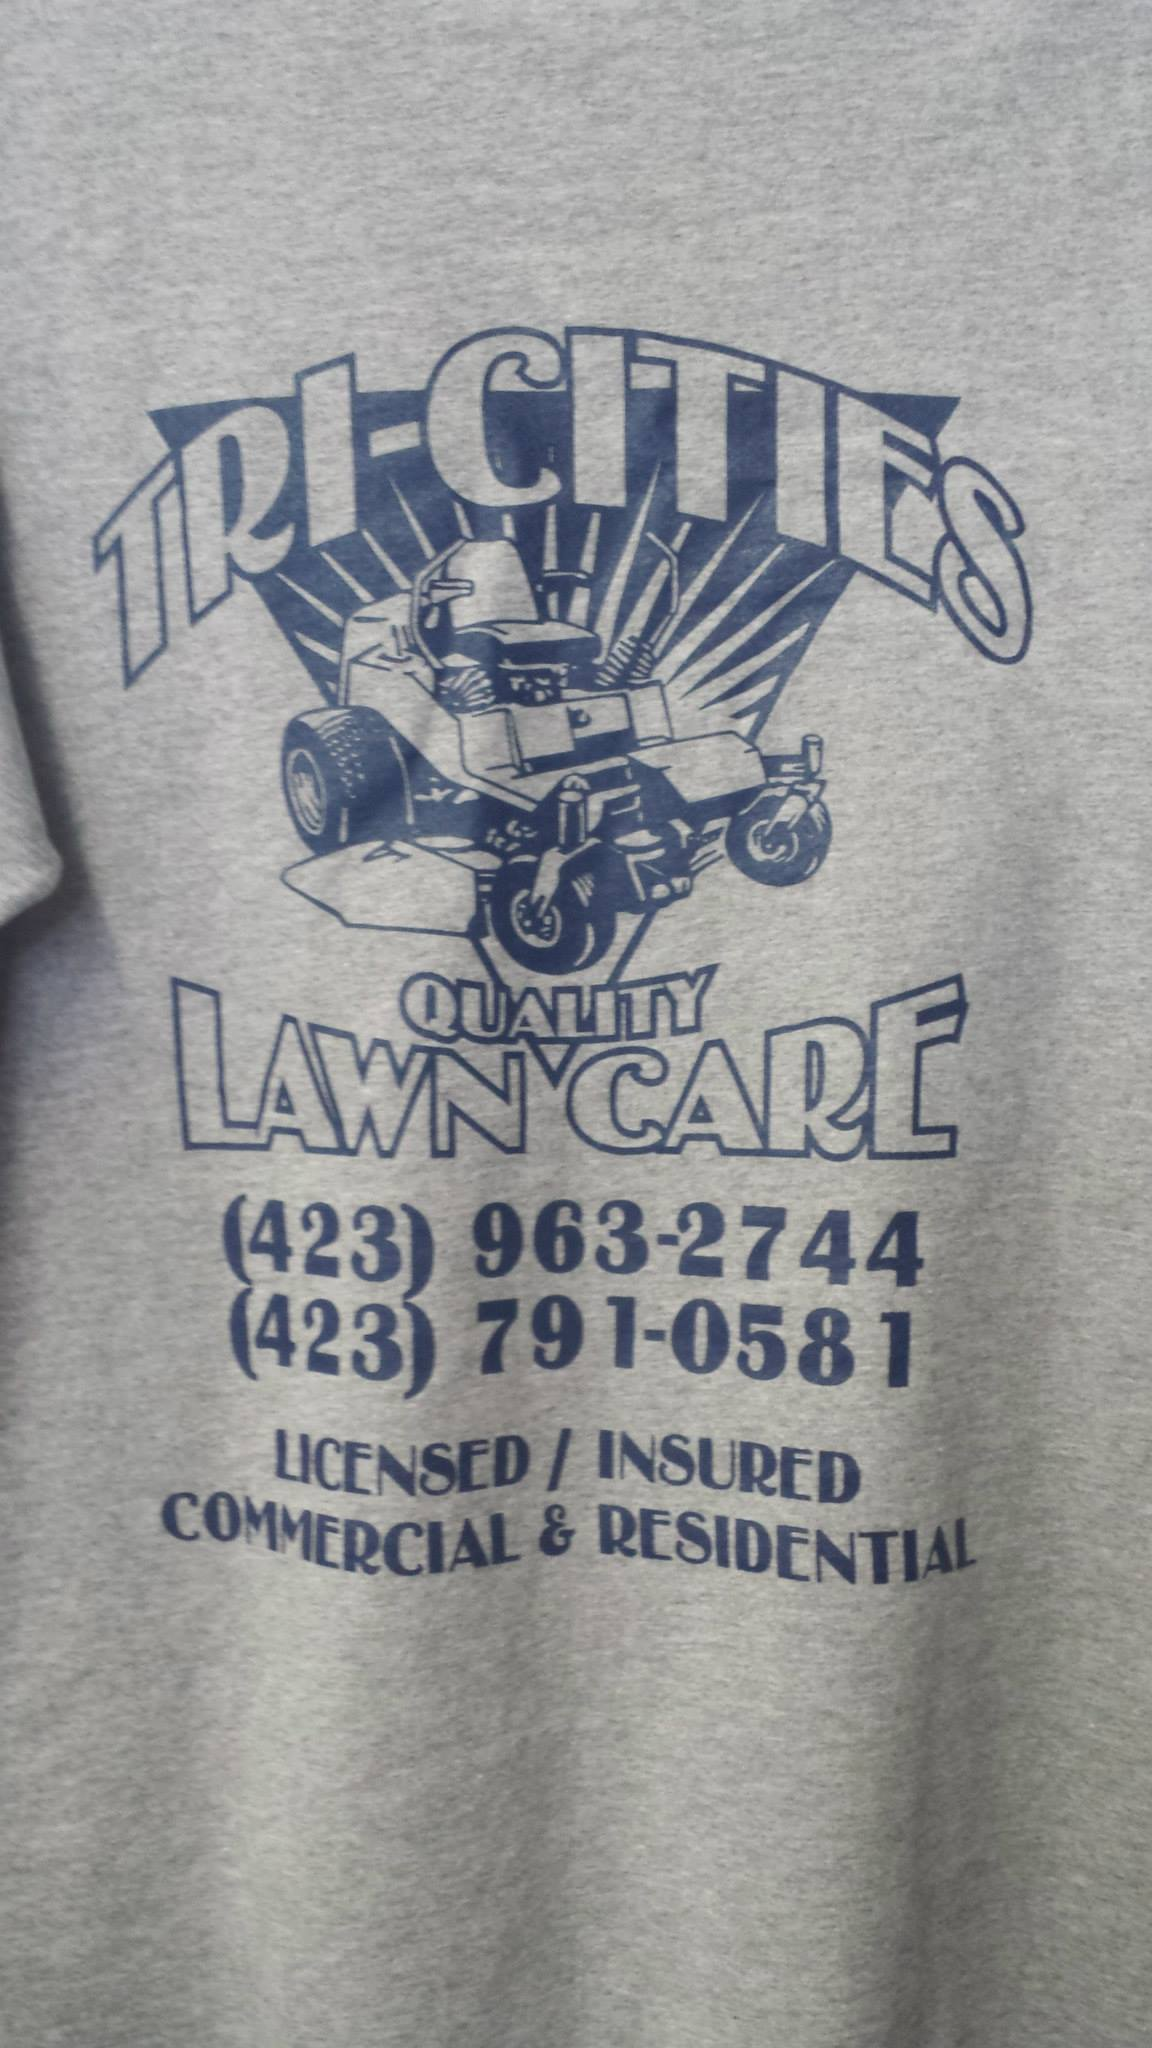 Tri-Cities Quality Lawn Care